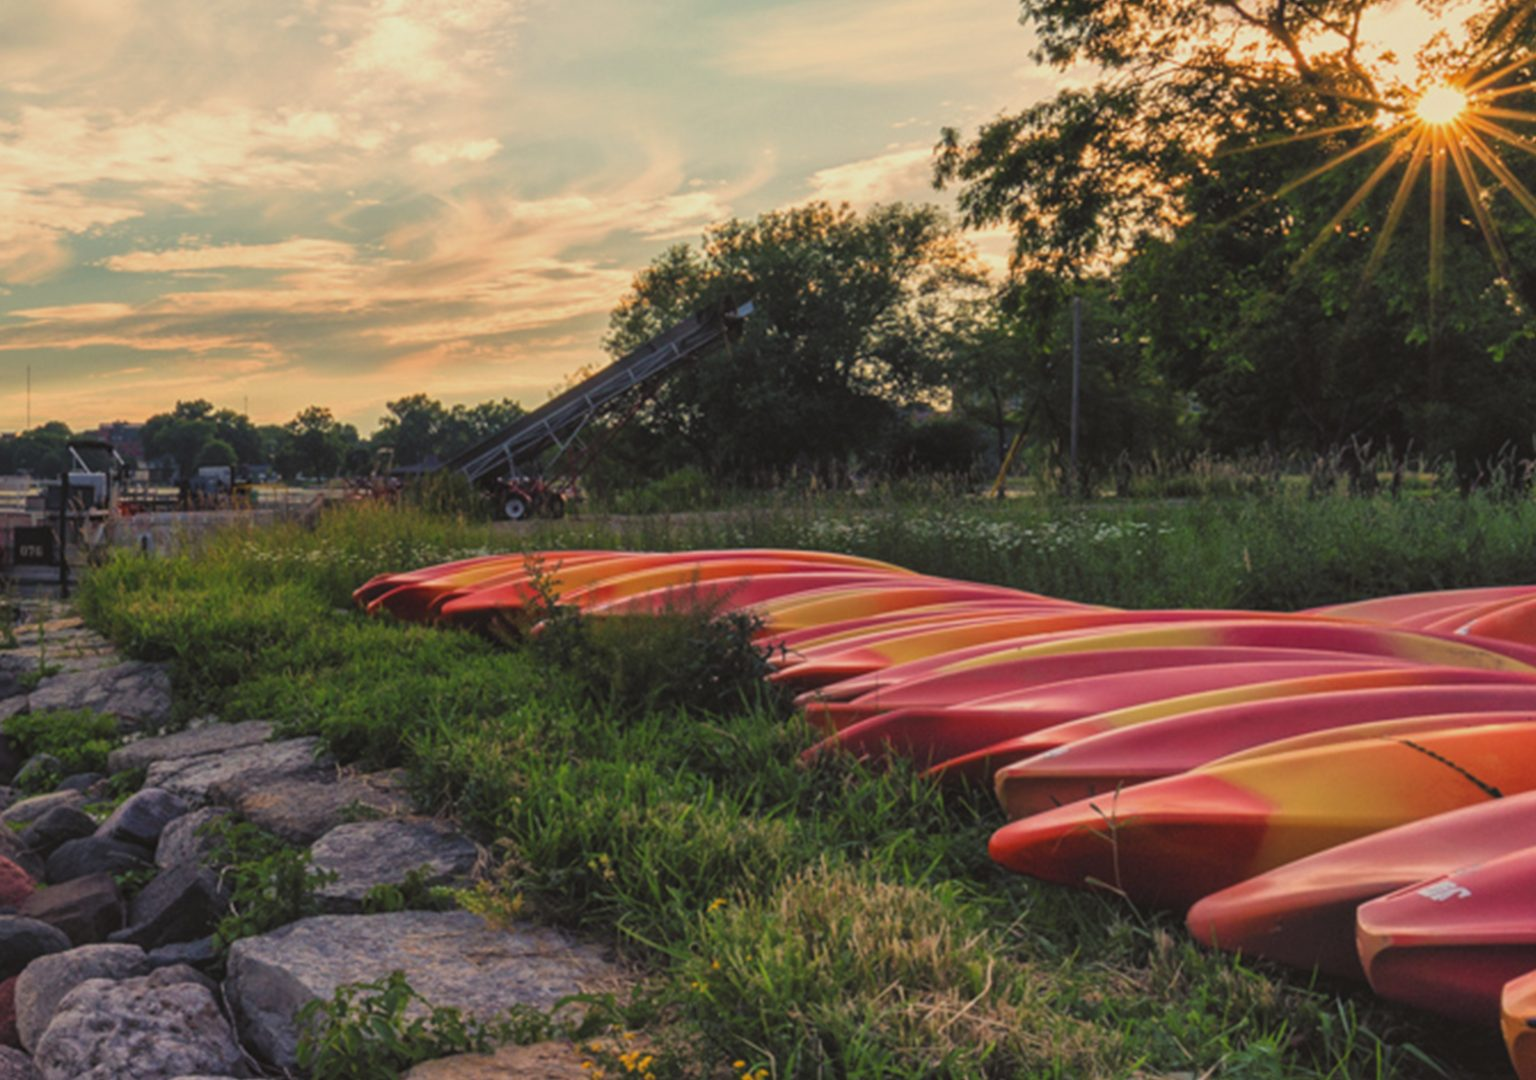 Canoes line the shore of Lake Mendota as the sun sets behind grove of trees in background